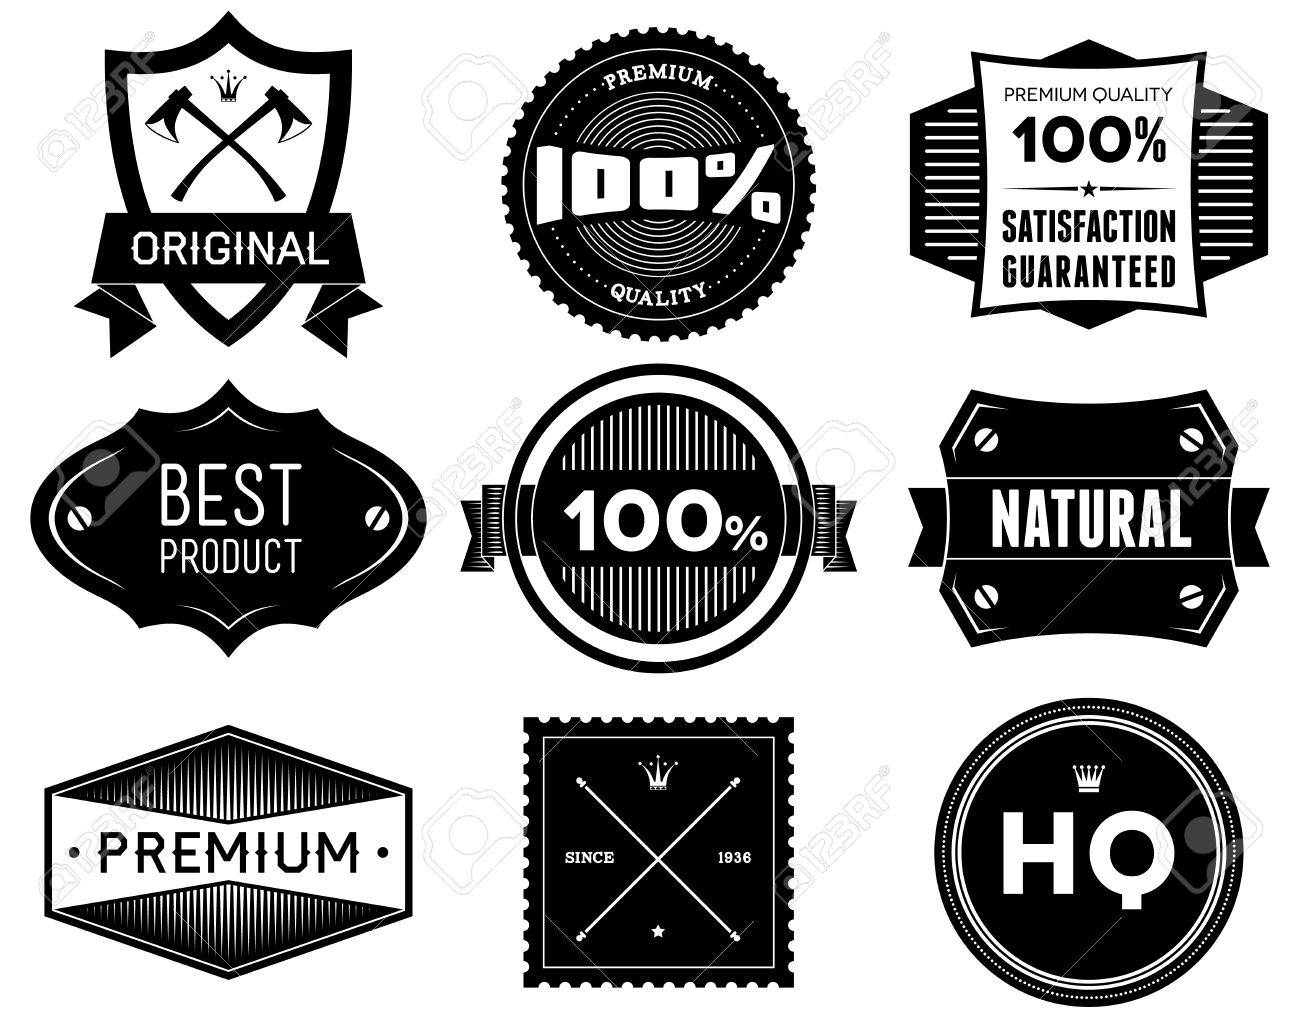 Set of vintage Premium Quality labels  Bitmap collection 5 Stock Photo - 21491119